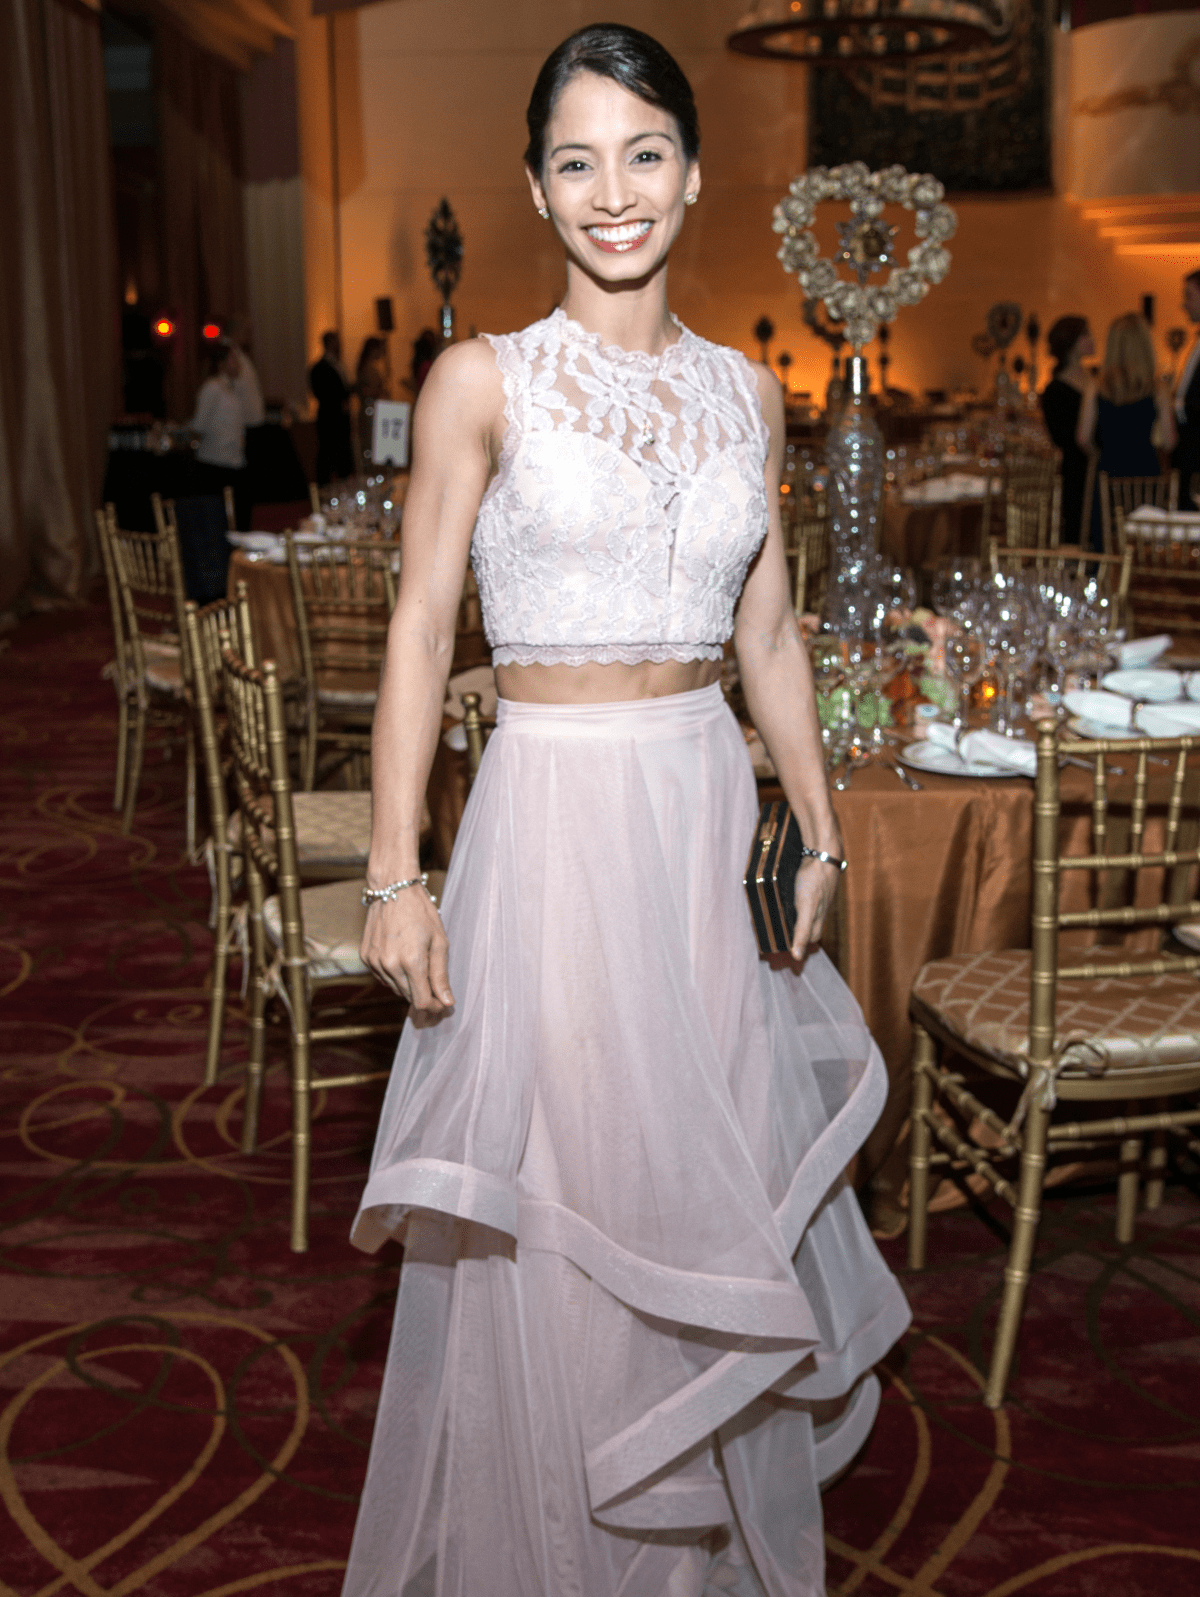 Houston, Ballet Ball gowns, Feb 2017, Houston Ballet principal Karina Gonzalez